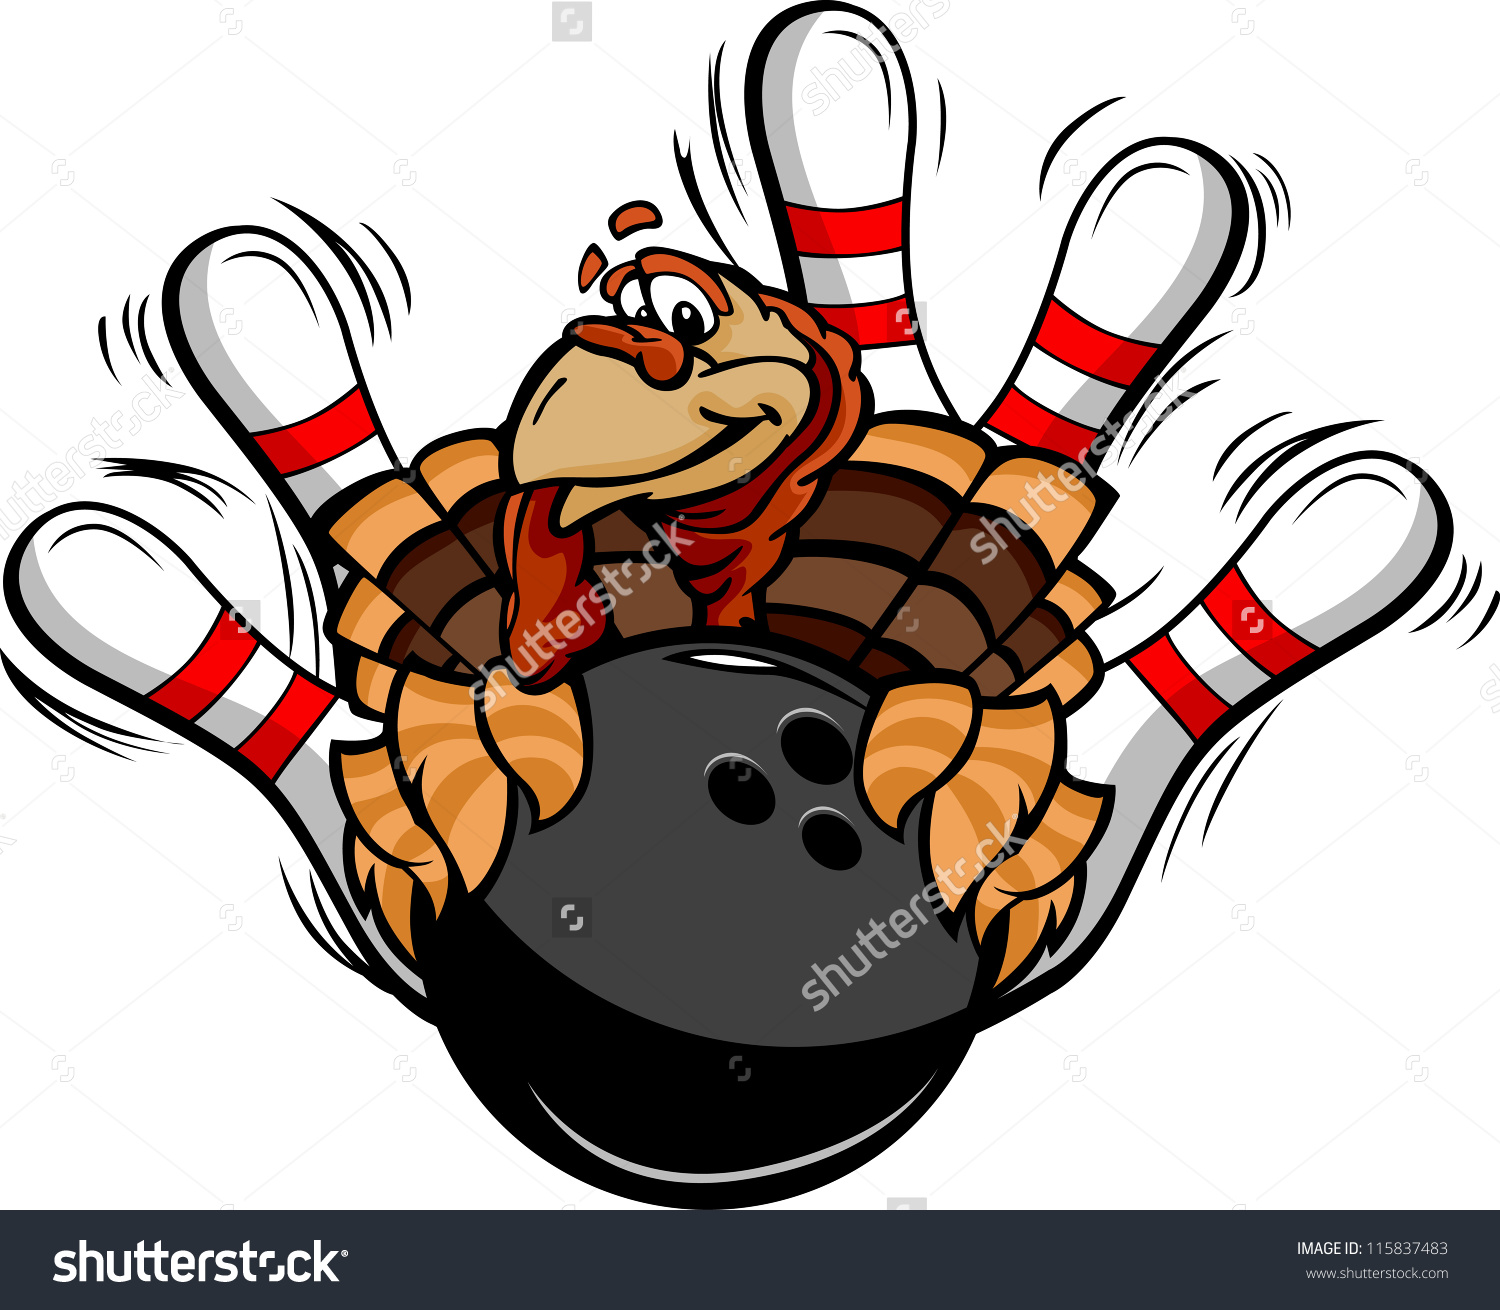 Bowling clipart vector. Holiday free download best